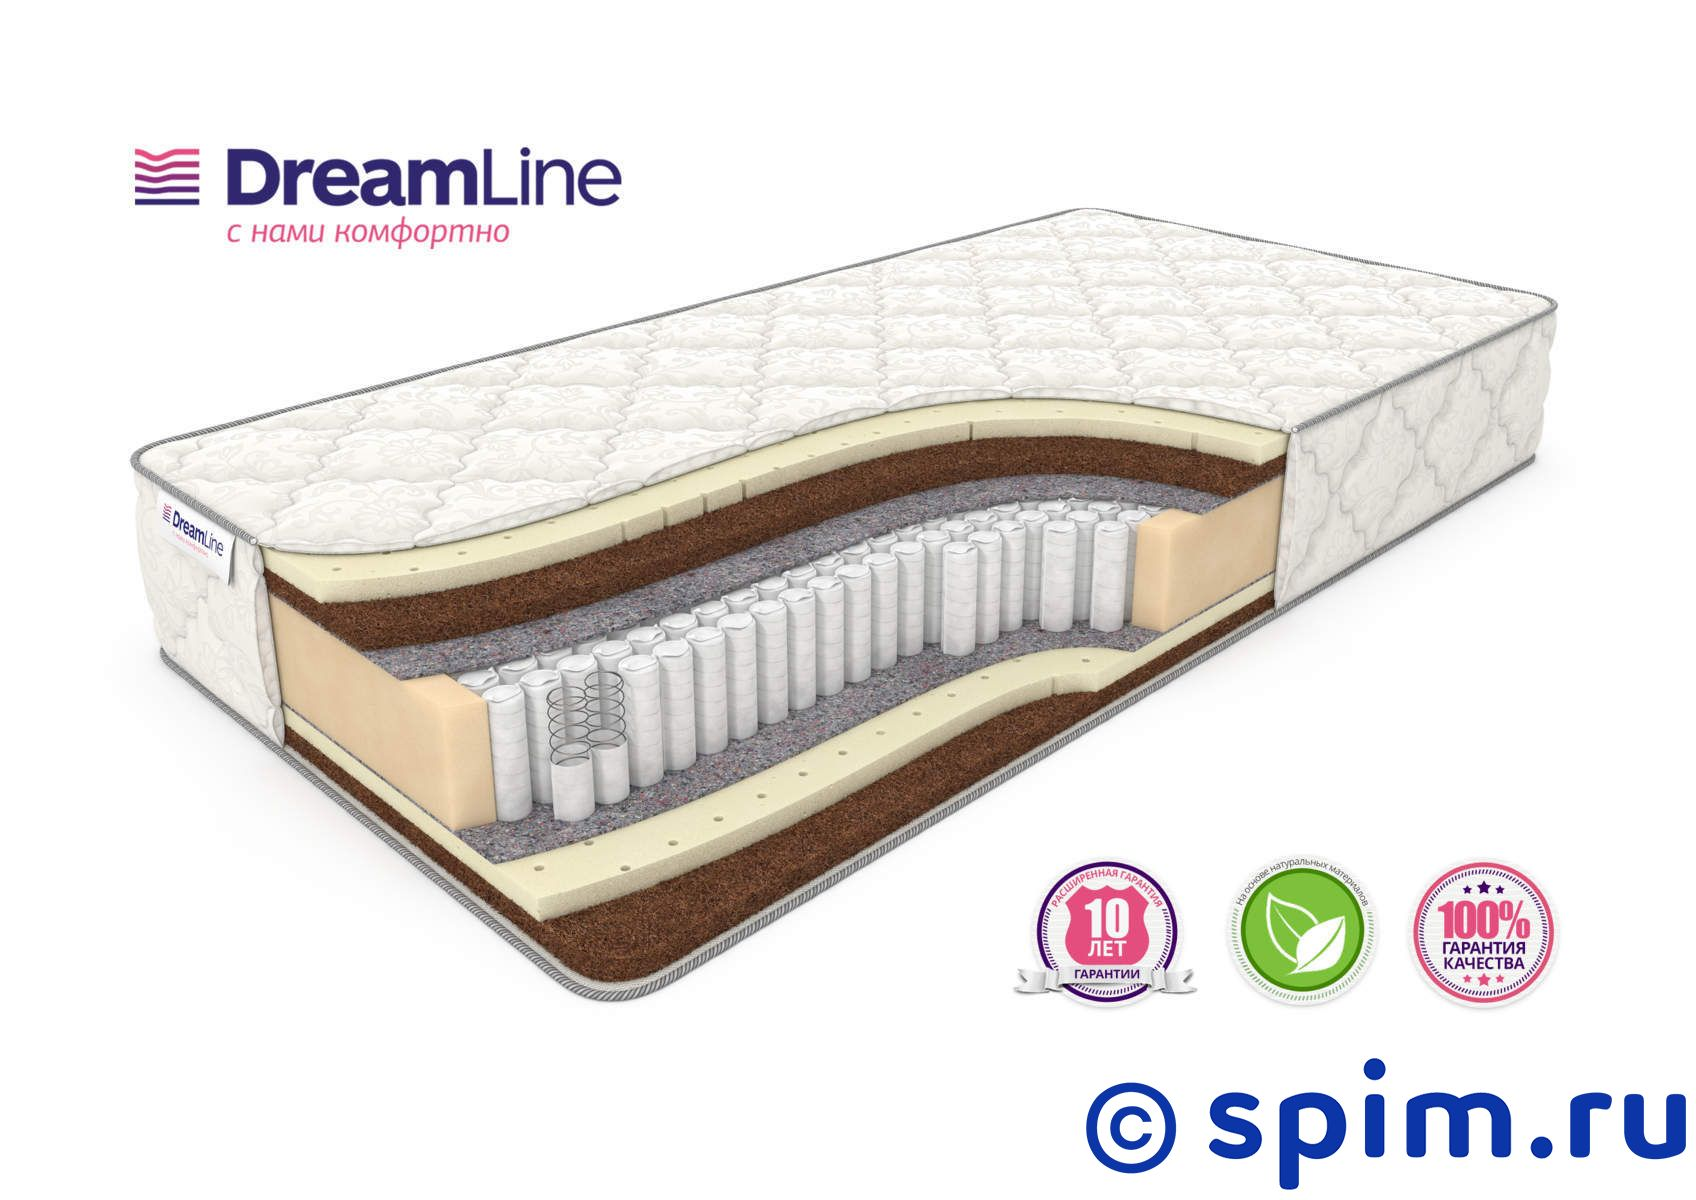 Матрас DreamLine Prime Mix S1000 140х200 см